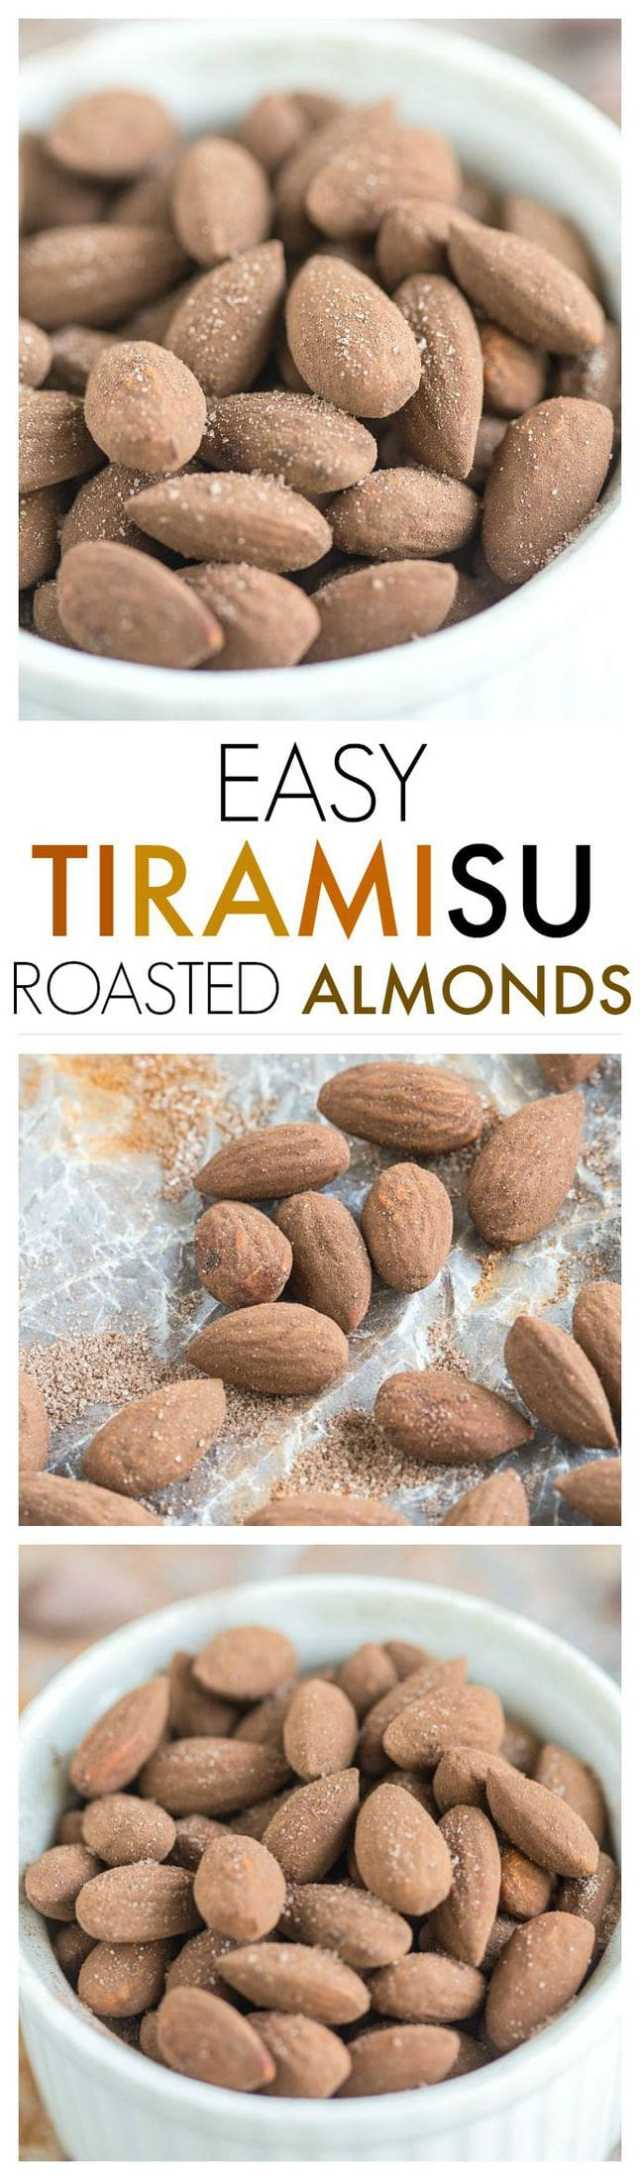 Tiramisu Roasted Almonds- Quick, easy and so darn delicious, you'd never guess these tiramisu roasted almonds were healthy too! {gluten free, vegan, paleo + sugar free option!} #coffee #tiramisu #almonds